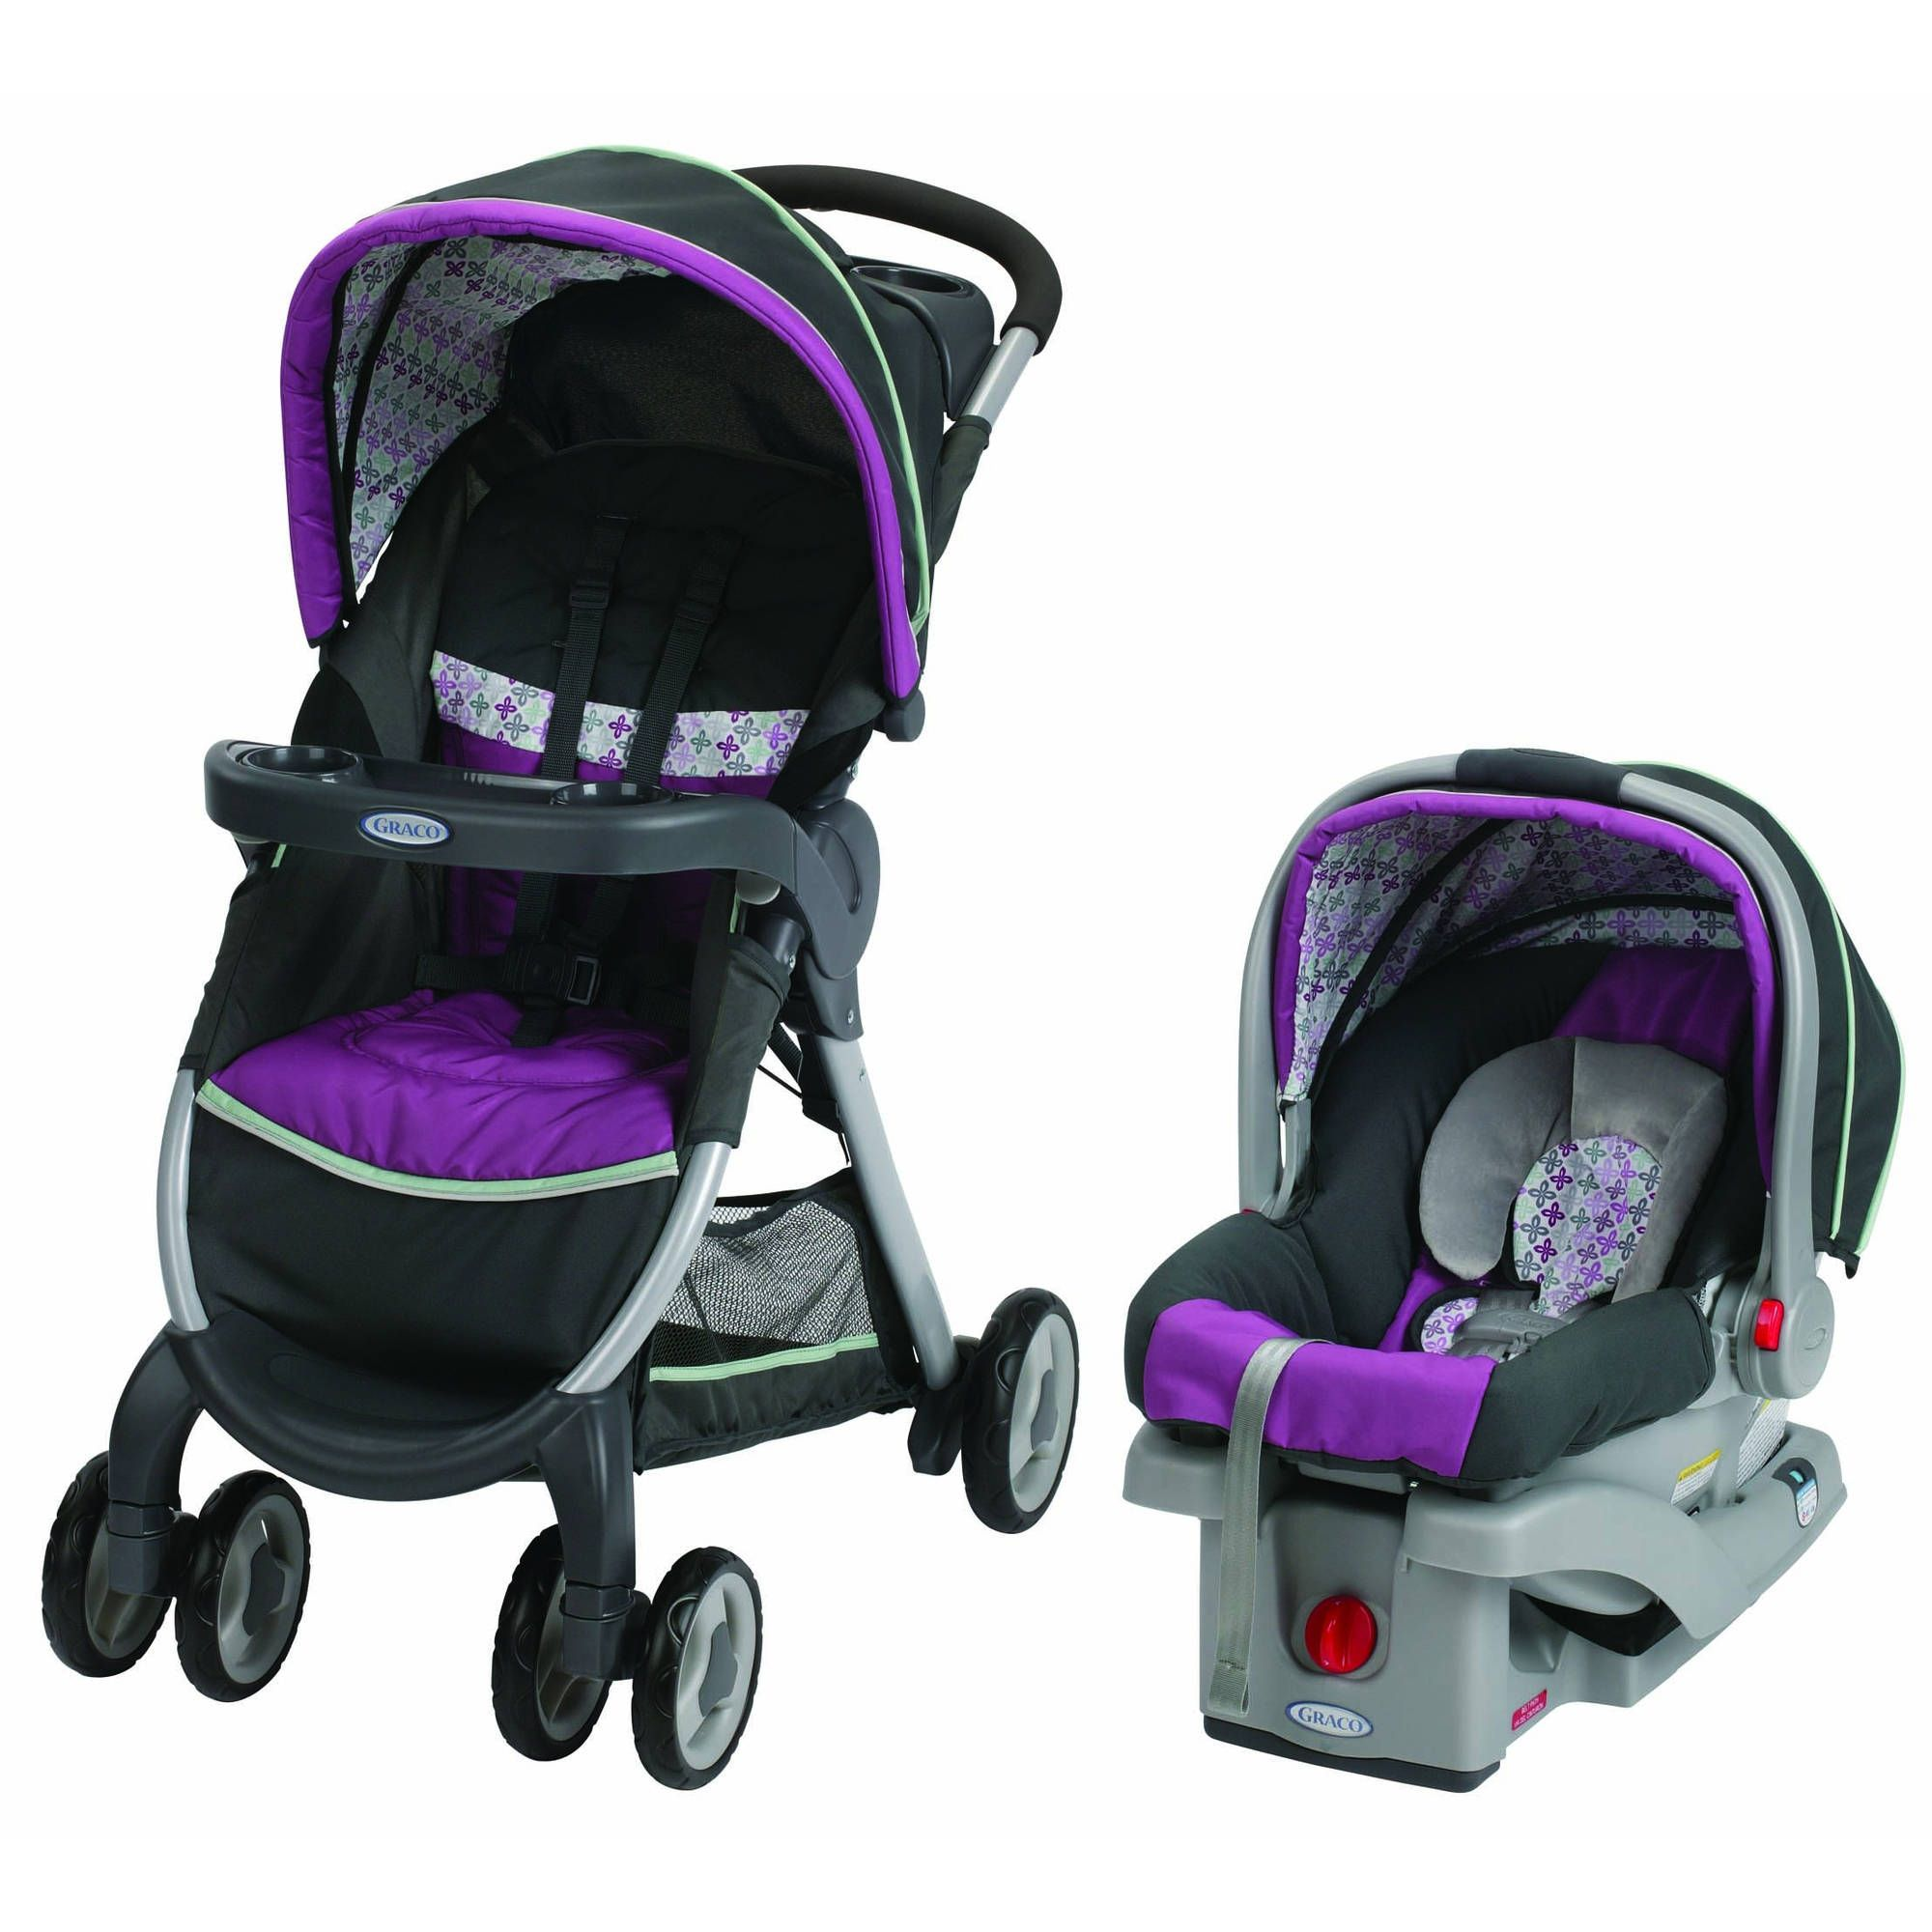 Graco FastAction Fold Click Connect Travel System, Car